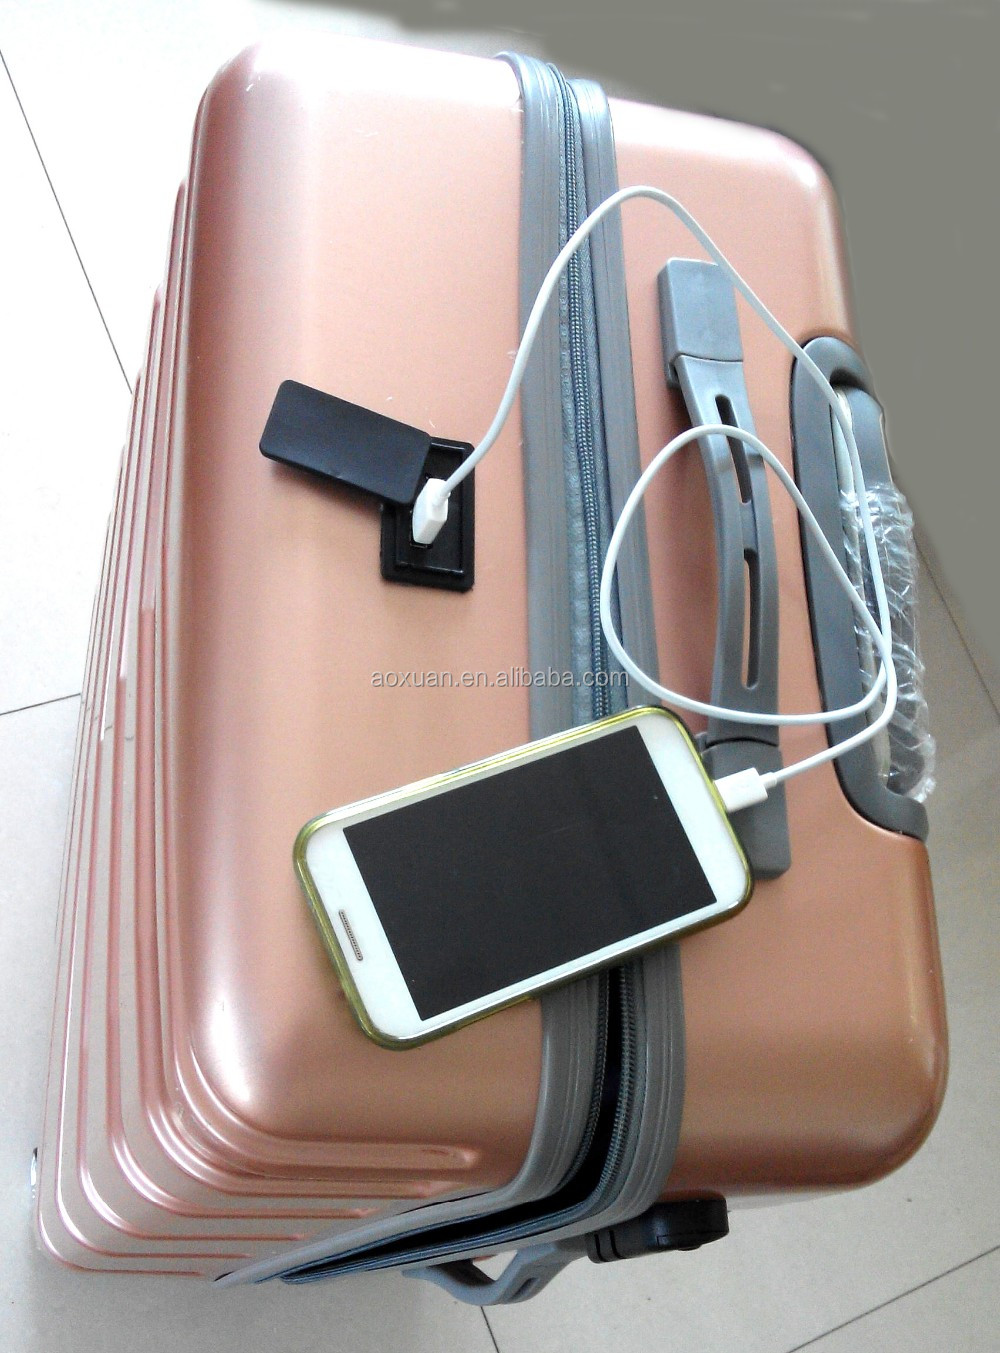 USB charger luggage 2016 new luggage usb charger luggage